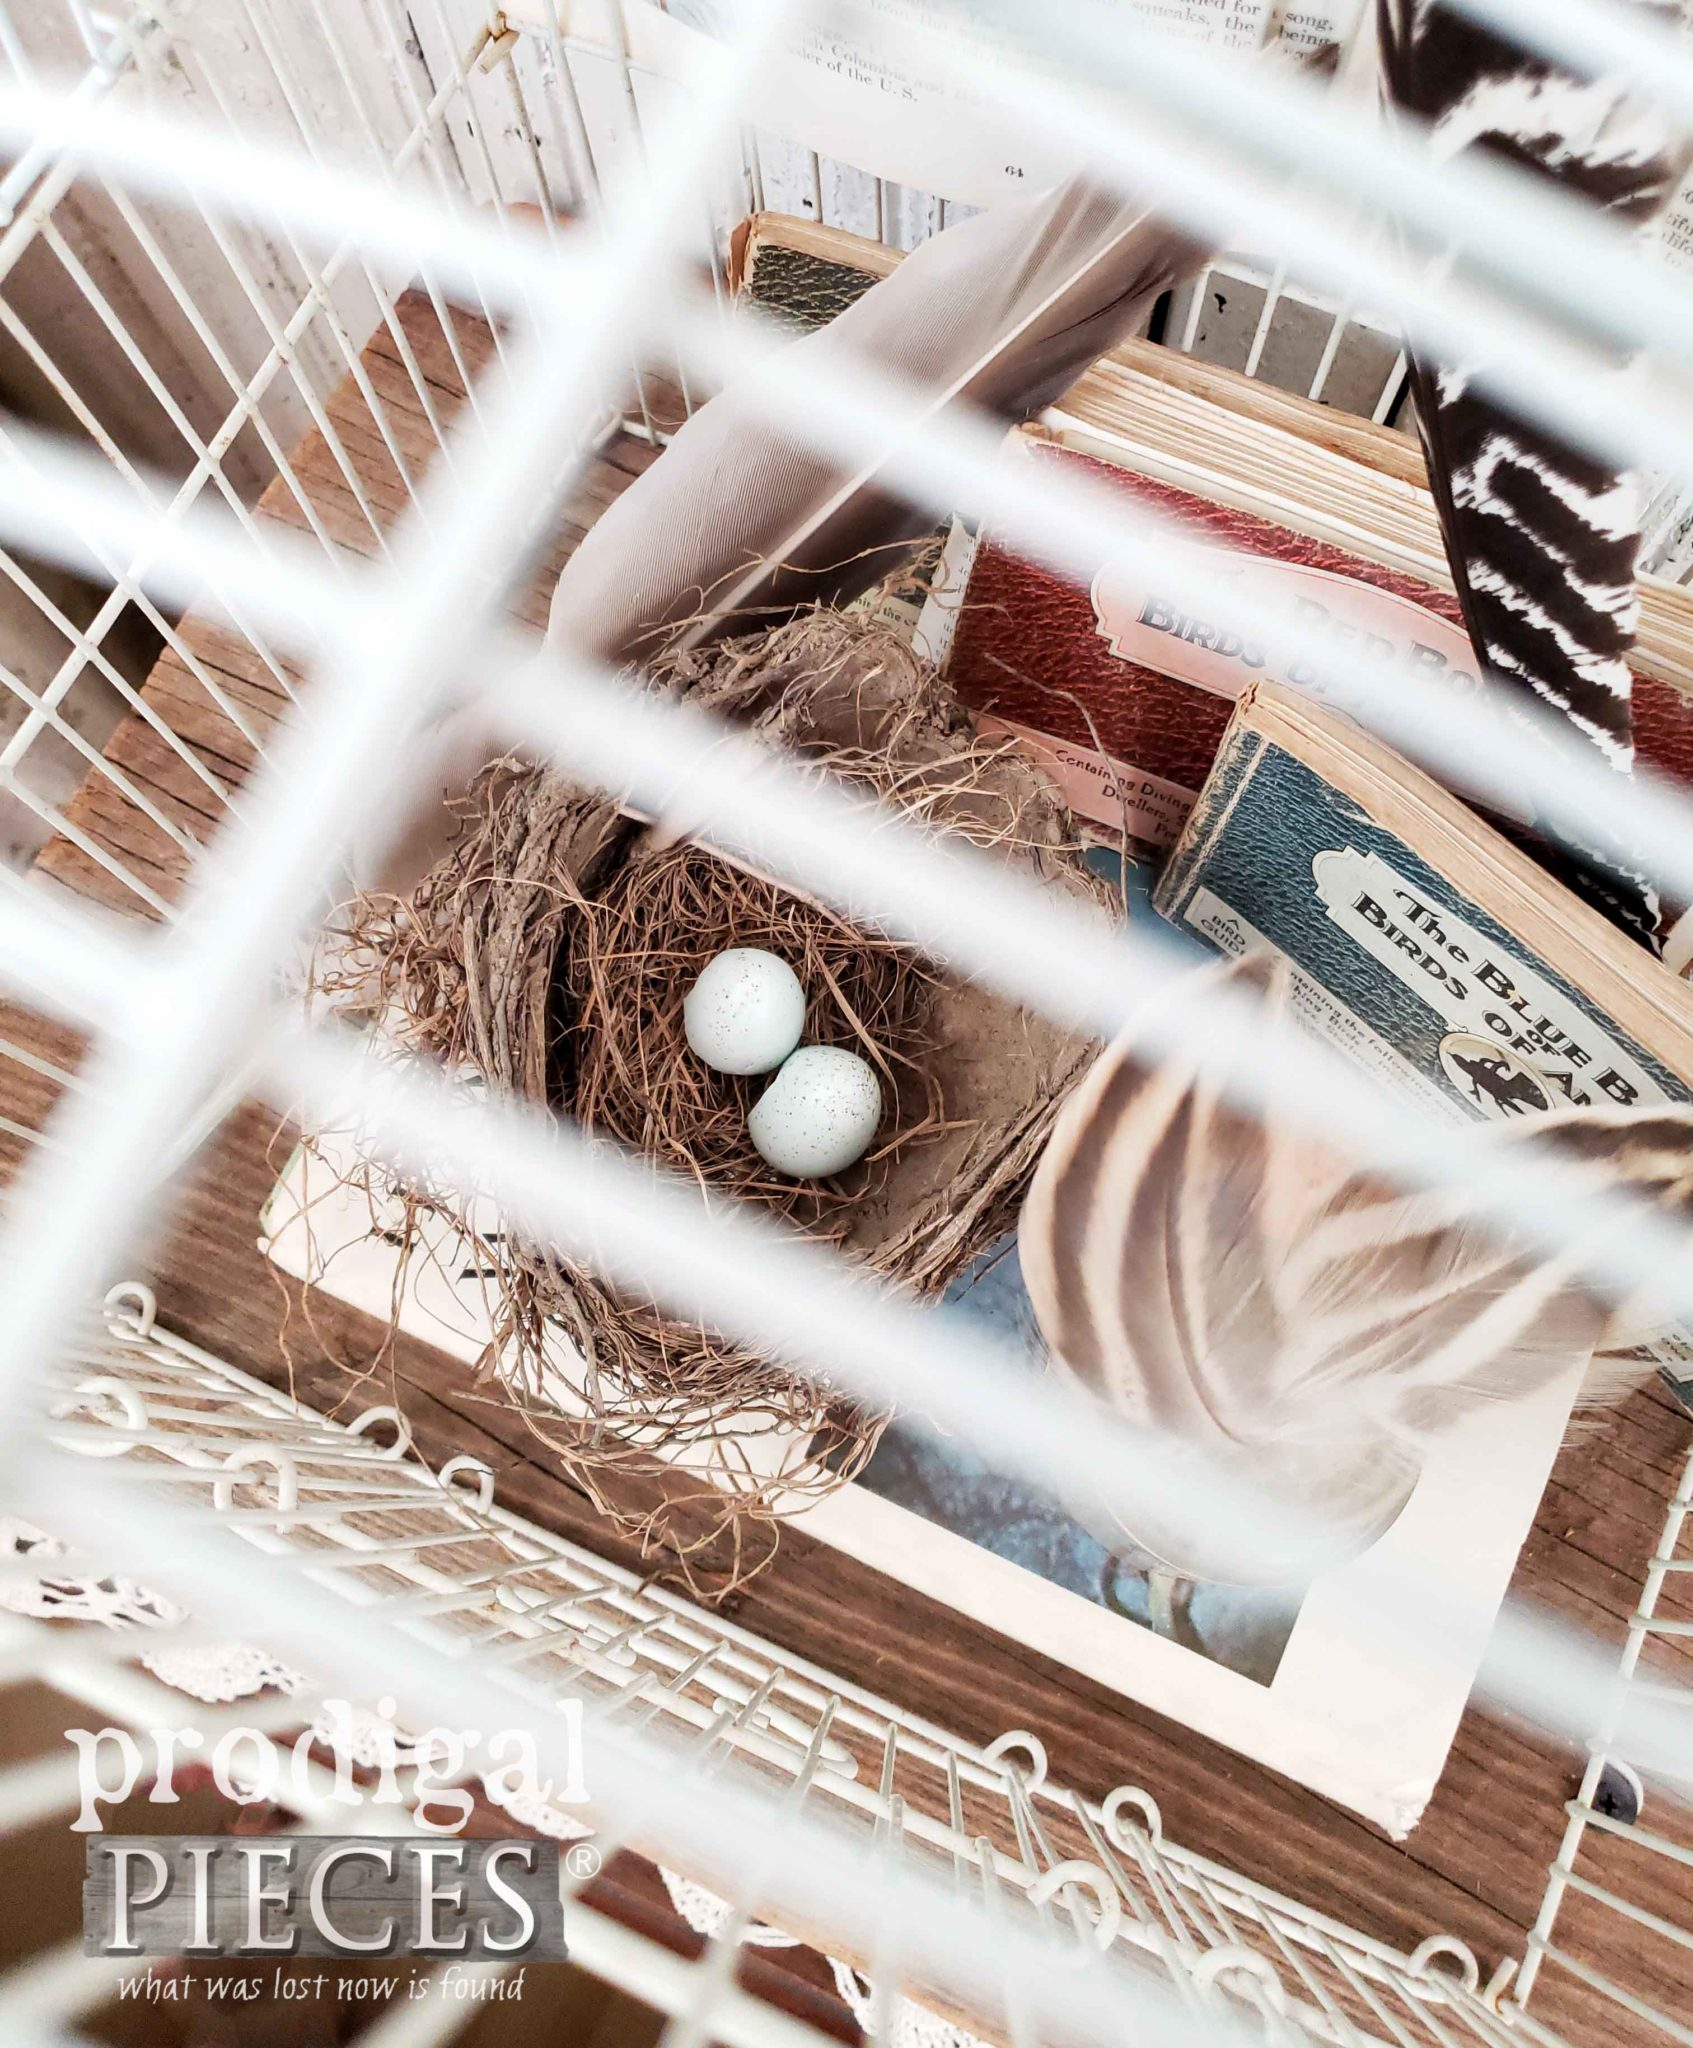 Thrifted Bird Cage Turned Farmhouse Decor by Larissa of Prodigal Pieces | prodigalpieces.com #prodigalpieces #farmhouse #home #homedecor #diy